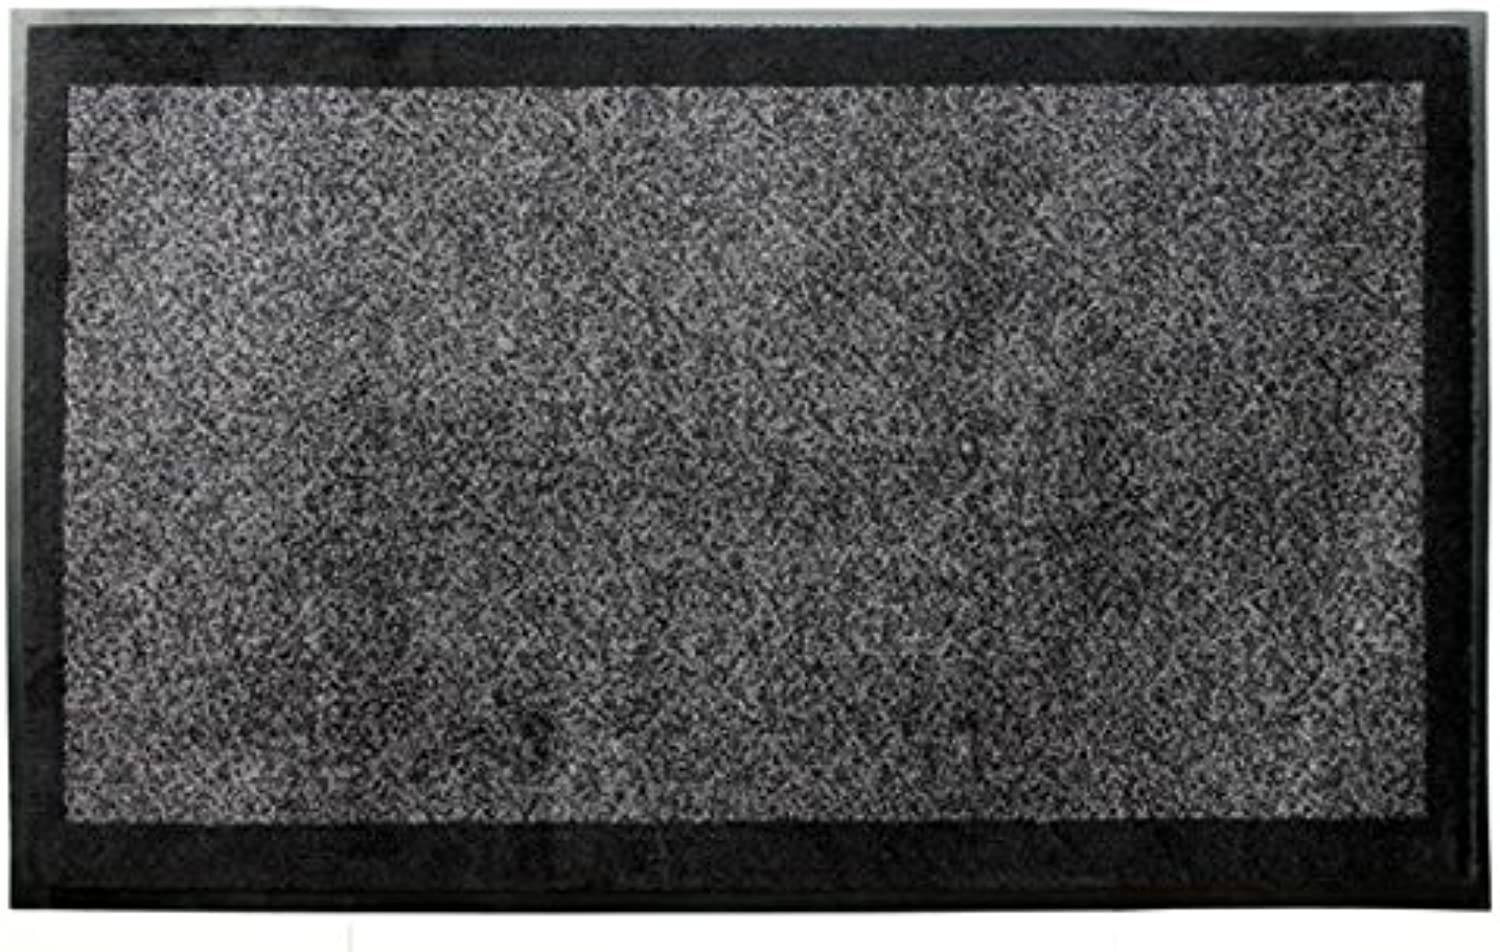 Carpeted Floor Mat - 3' x 5' - Graphite Grey w Decorative Black Border -Carpet Mat Pro - Extra Sturdy 80mil Rubber Backing